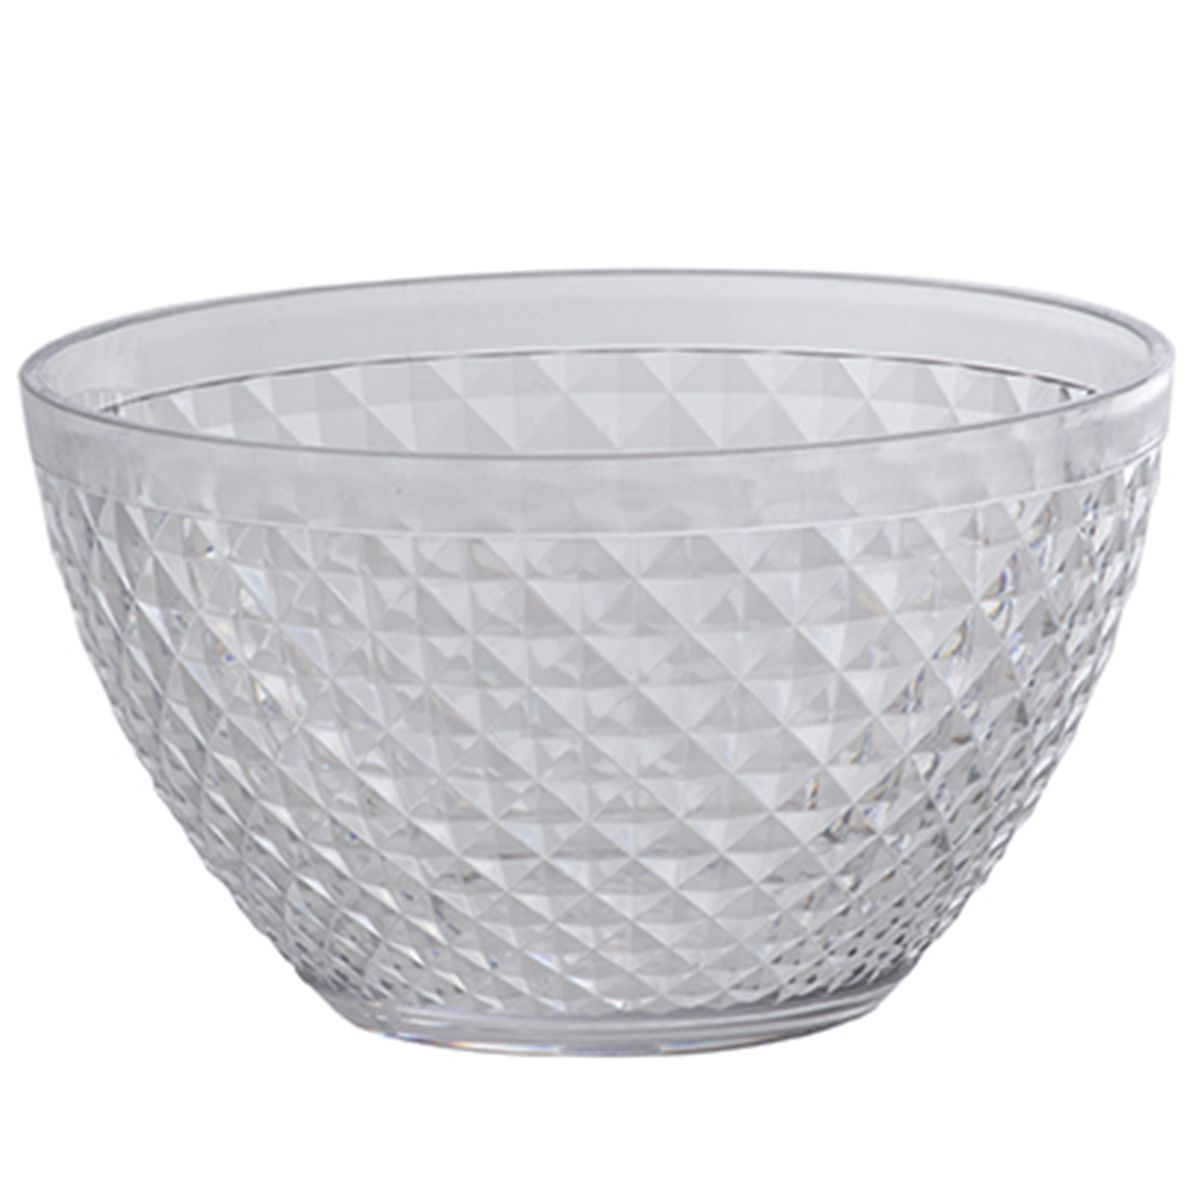 BOWL LUXXOR 800 ML - 1145